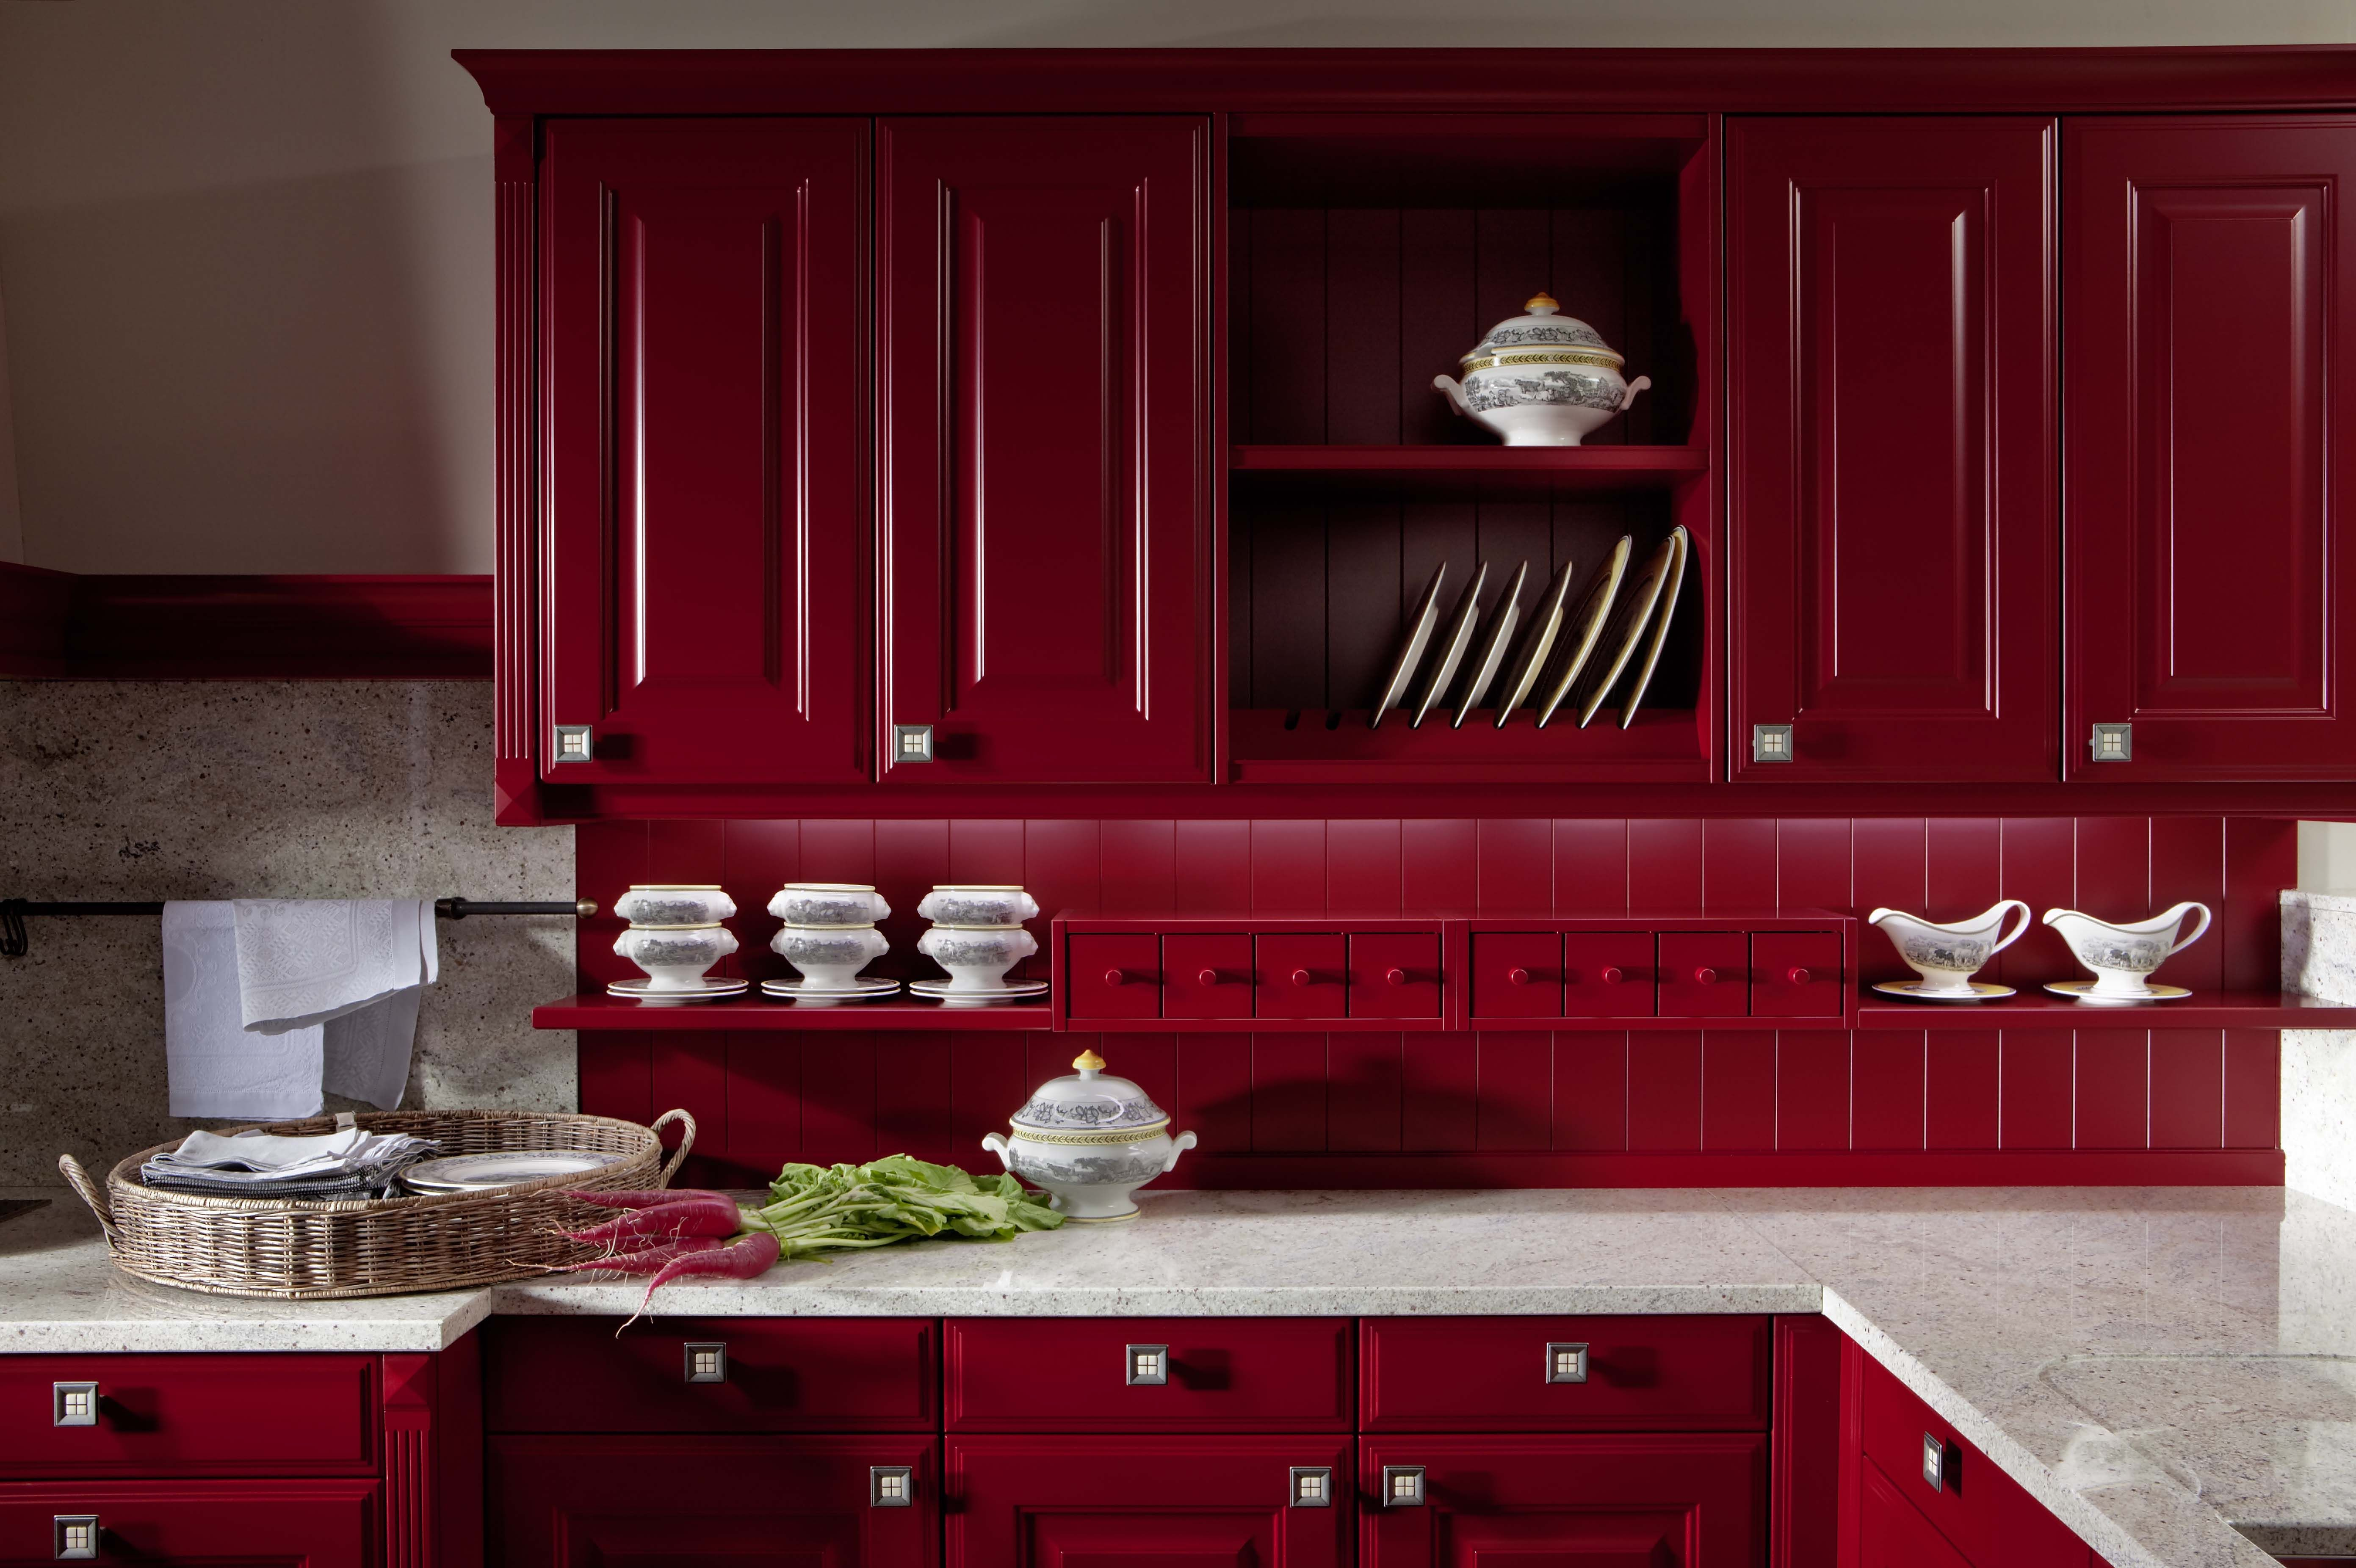 Allow Vibrant Colours To Spice Up Your Kitchen Life Grundig Kitchen Trends Inspiration Kitchen Design Trends Kitchen Cabinet Remodel Red Kitchen Cabinets